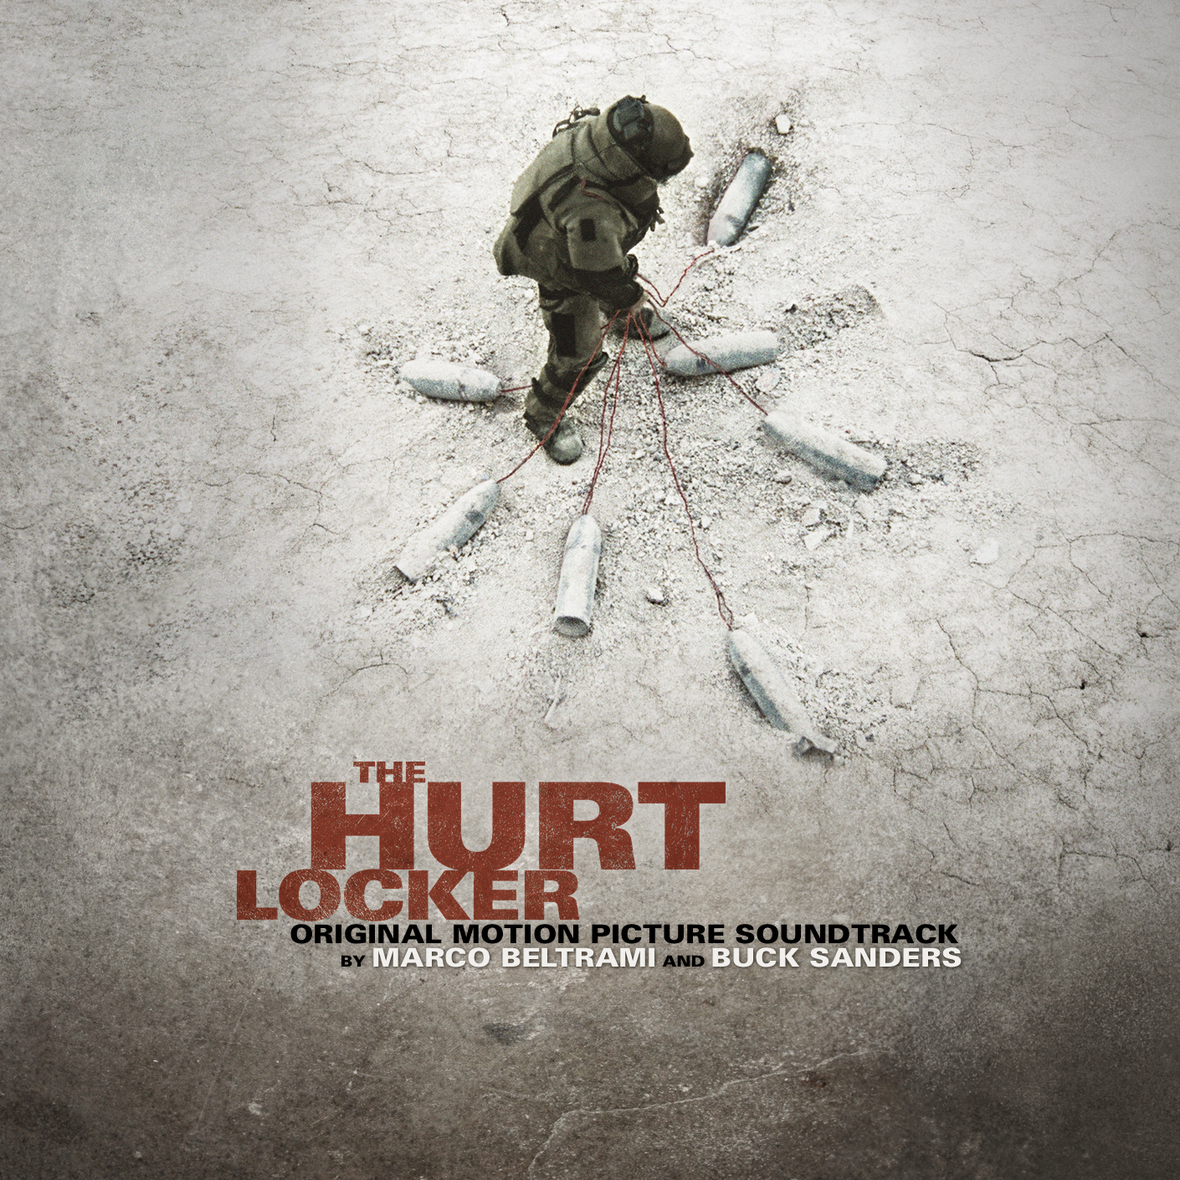 THE-HURT-LOCKER cover